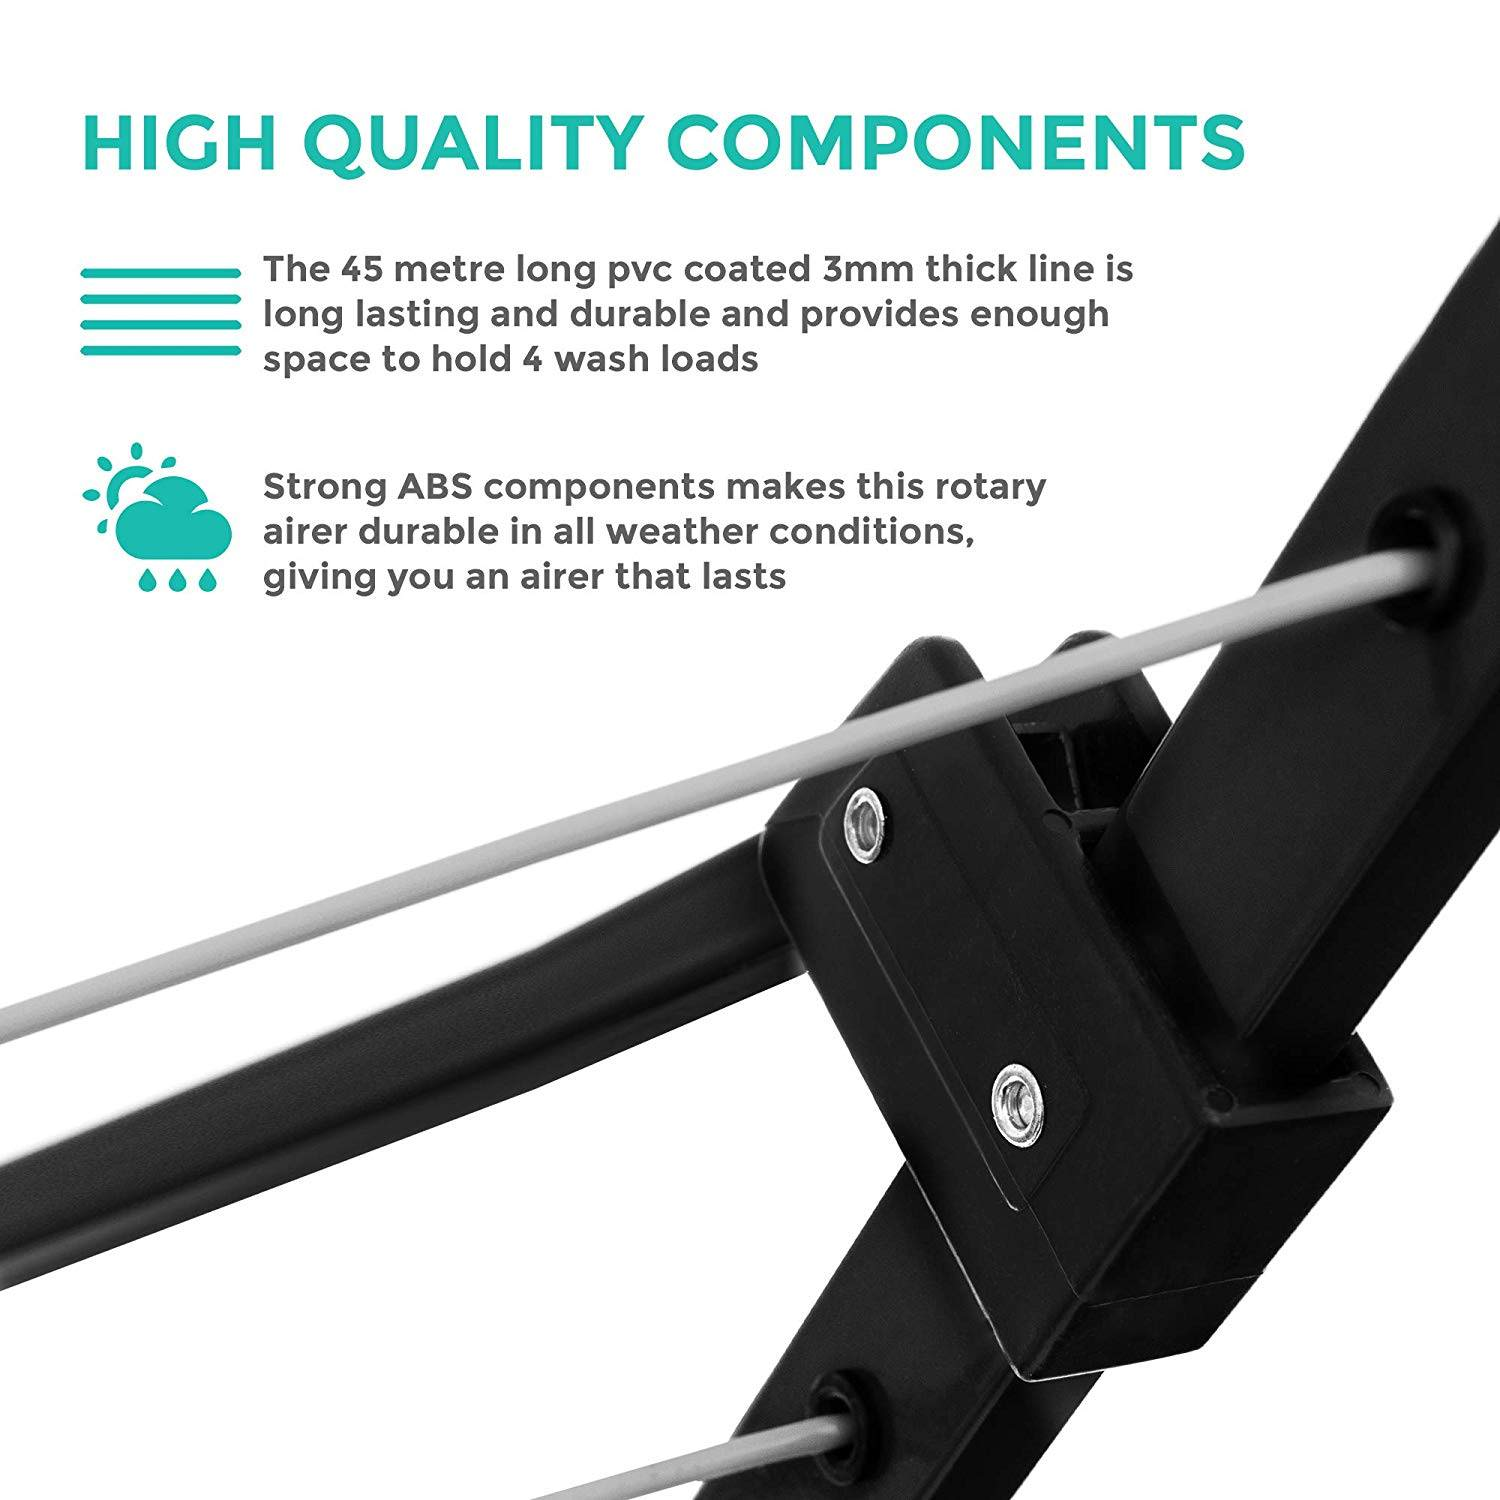 High-quality components